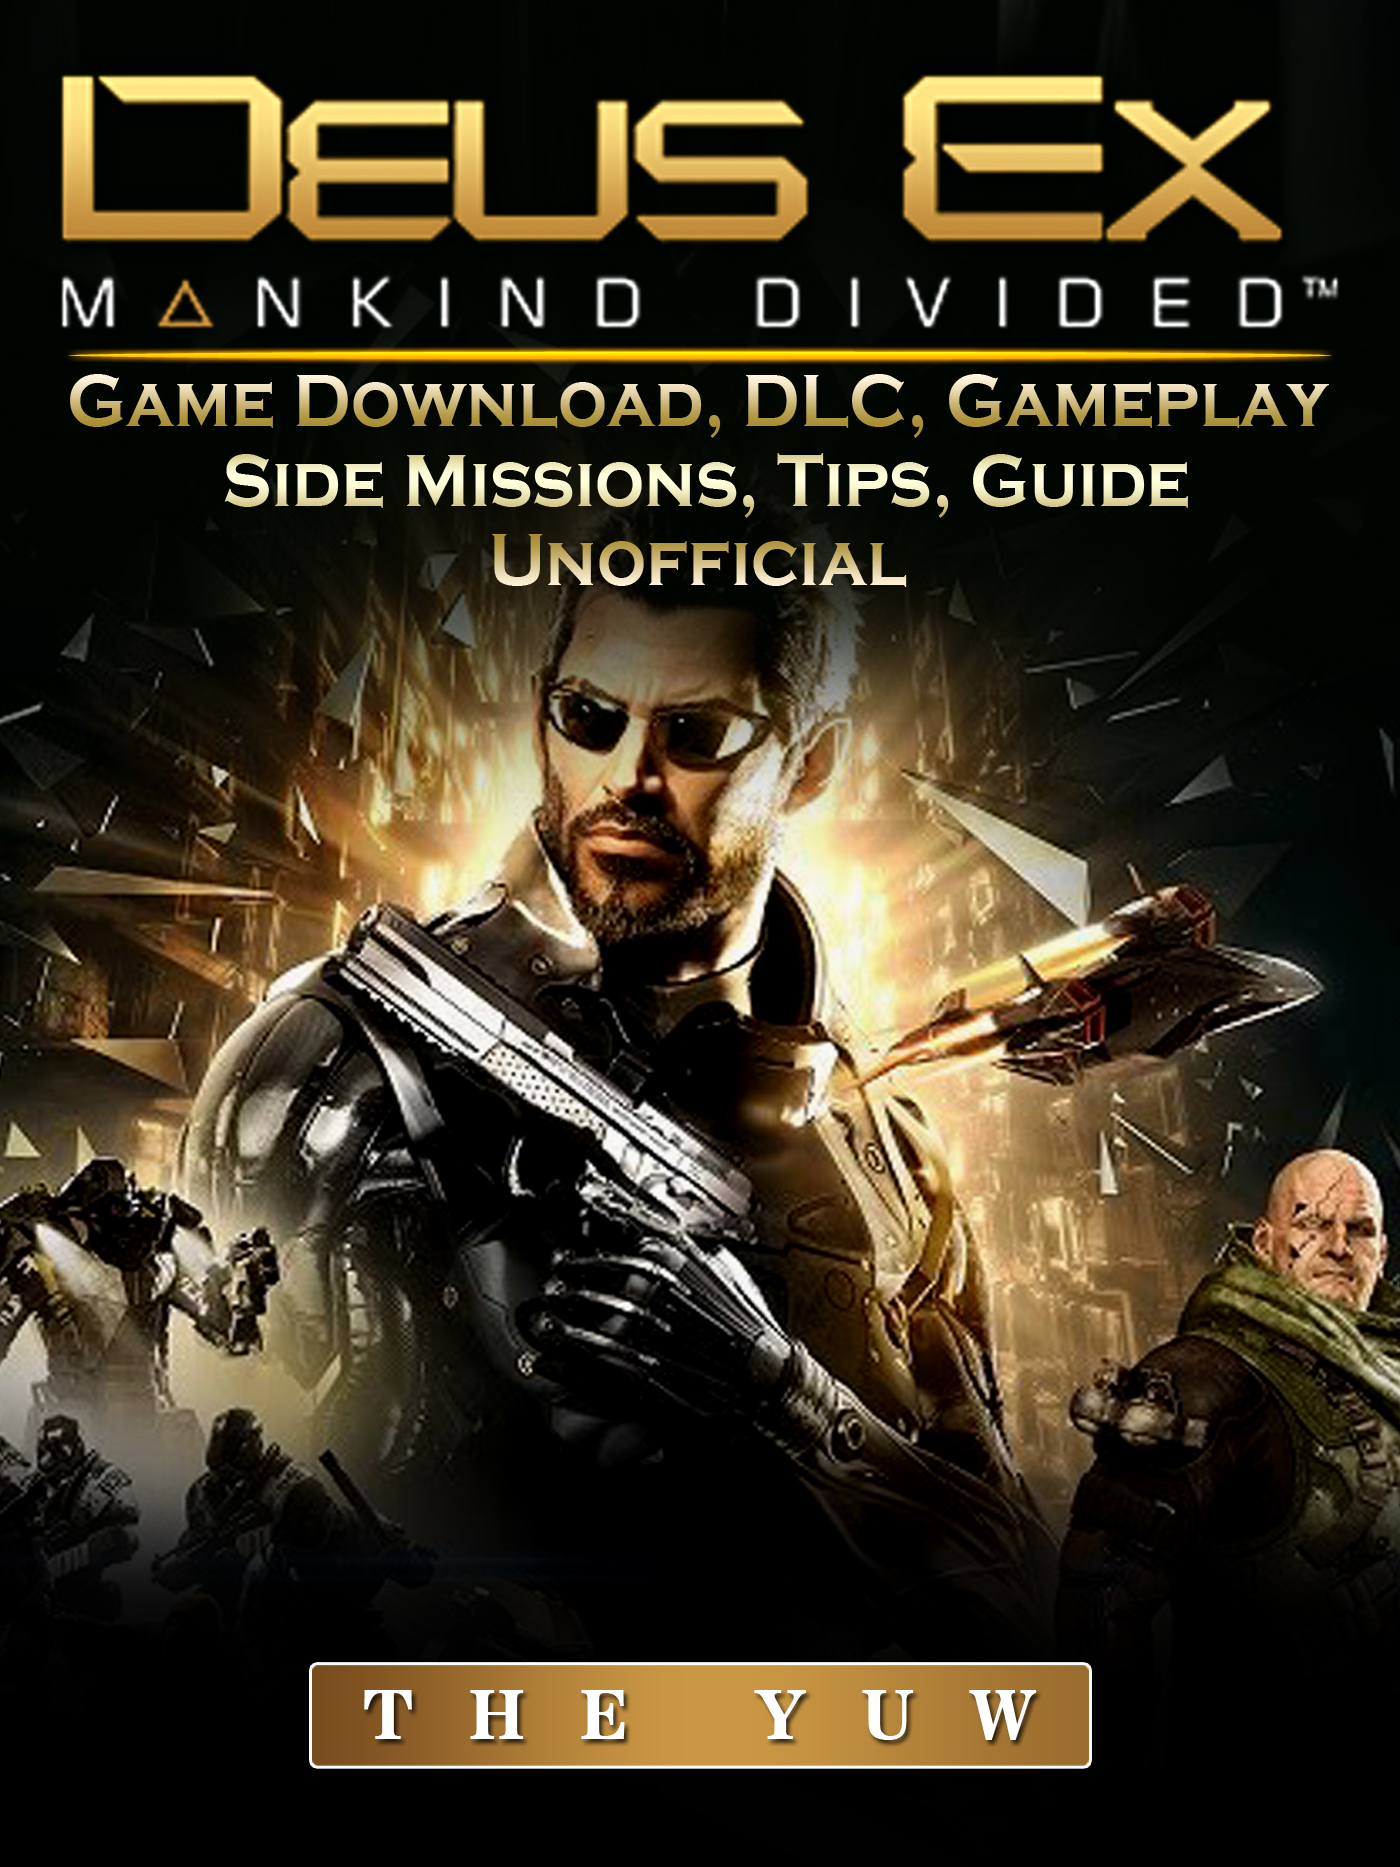 Deus Ex Mankind Game Download, DLC, Gameplay, Side Missions, Tips, Guide Unofficial